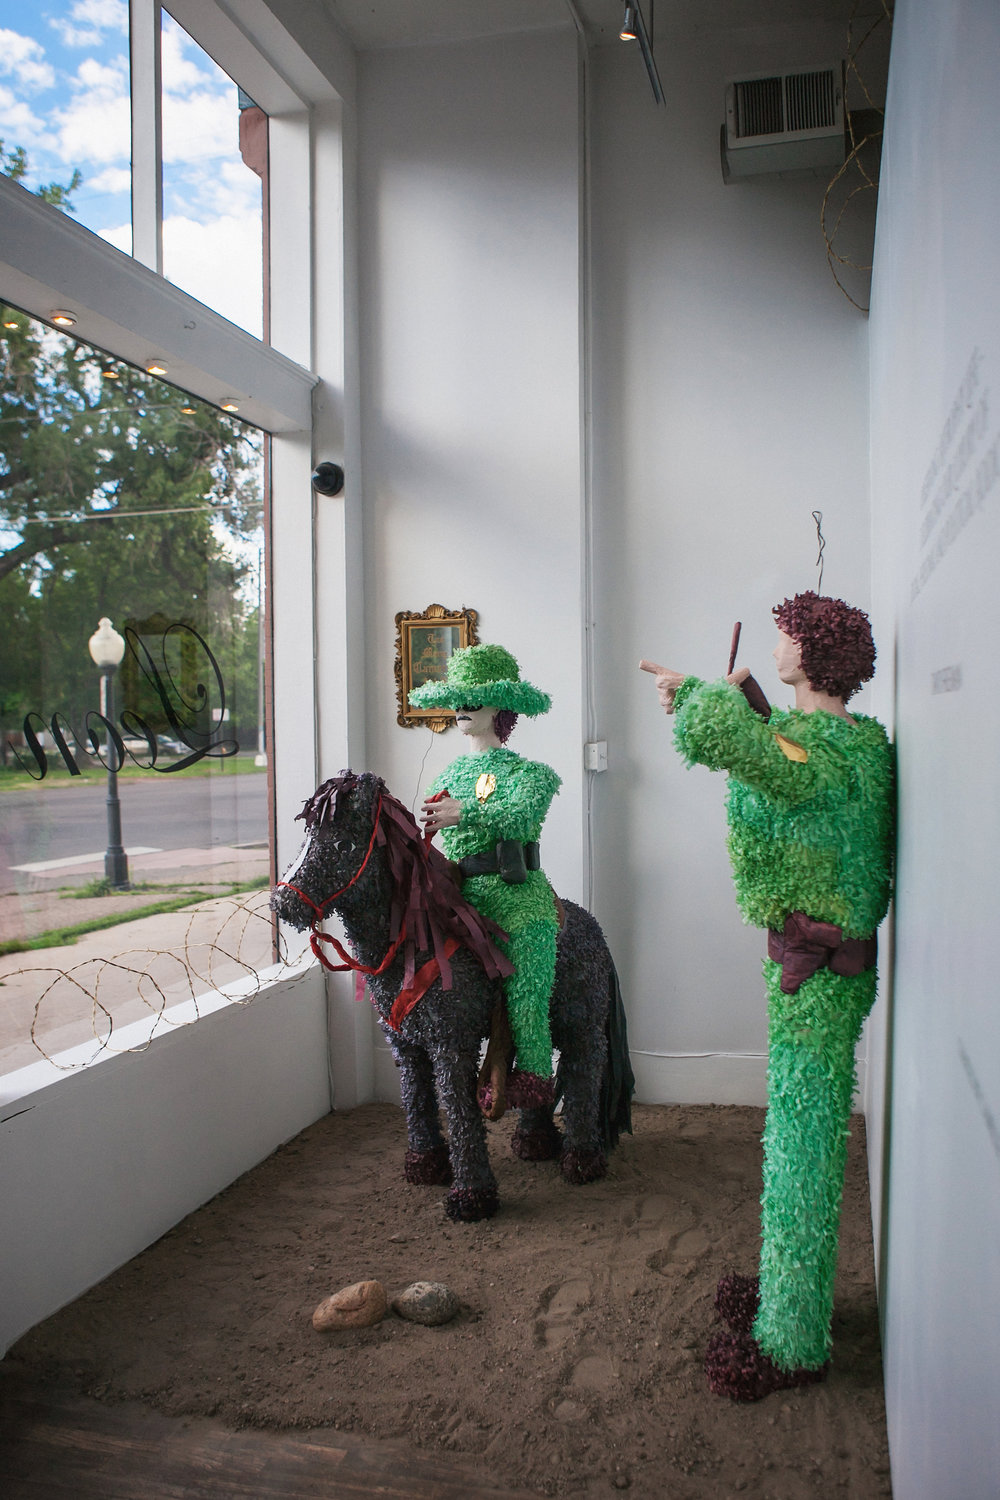 """Western American Posse for the People. A phenomenal Order of Historical yet Dissimilar Expressions of Artistic and Social Considerations.""  Patrol Guard Piñatas 73"" x 22"" (Guards) 71"" x 50"" x 22"" (Mounted Guard)  2016"